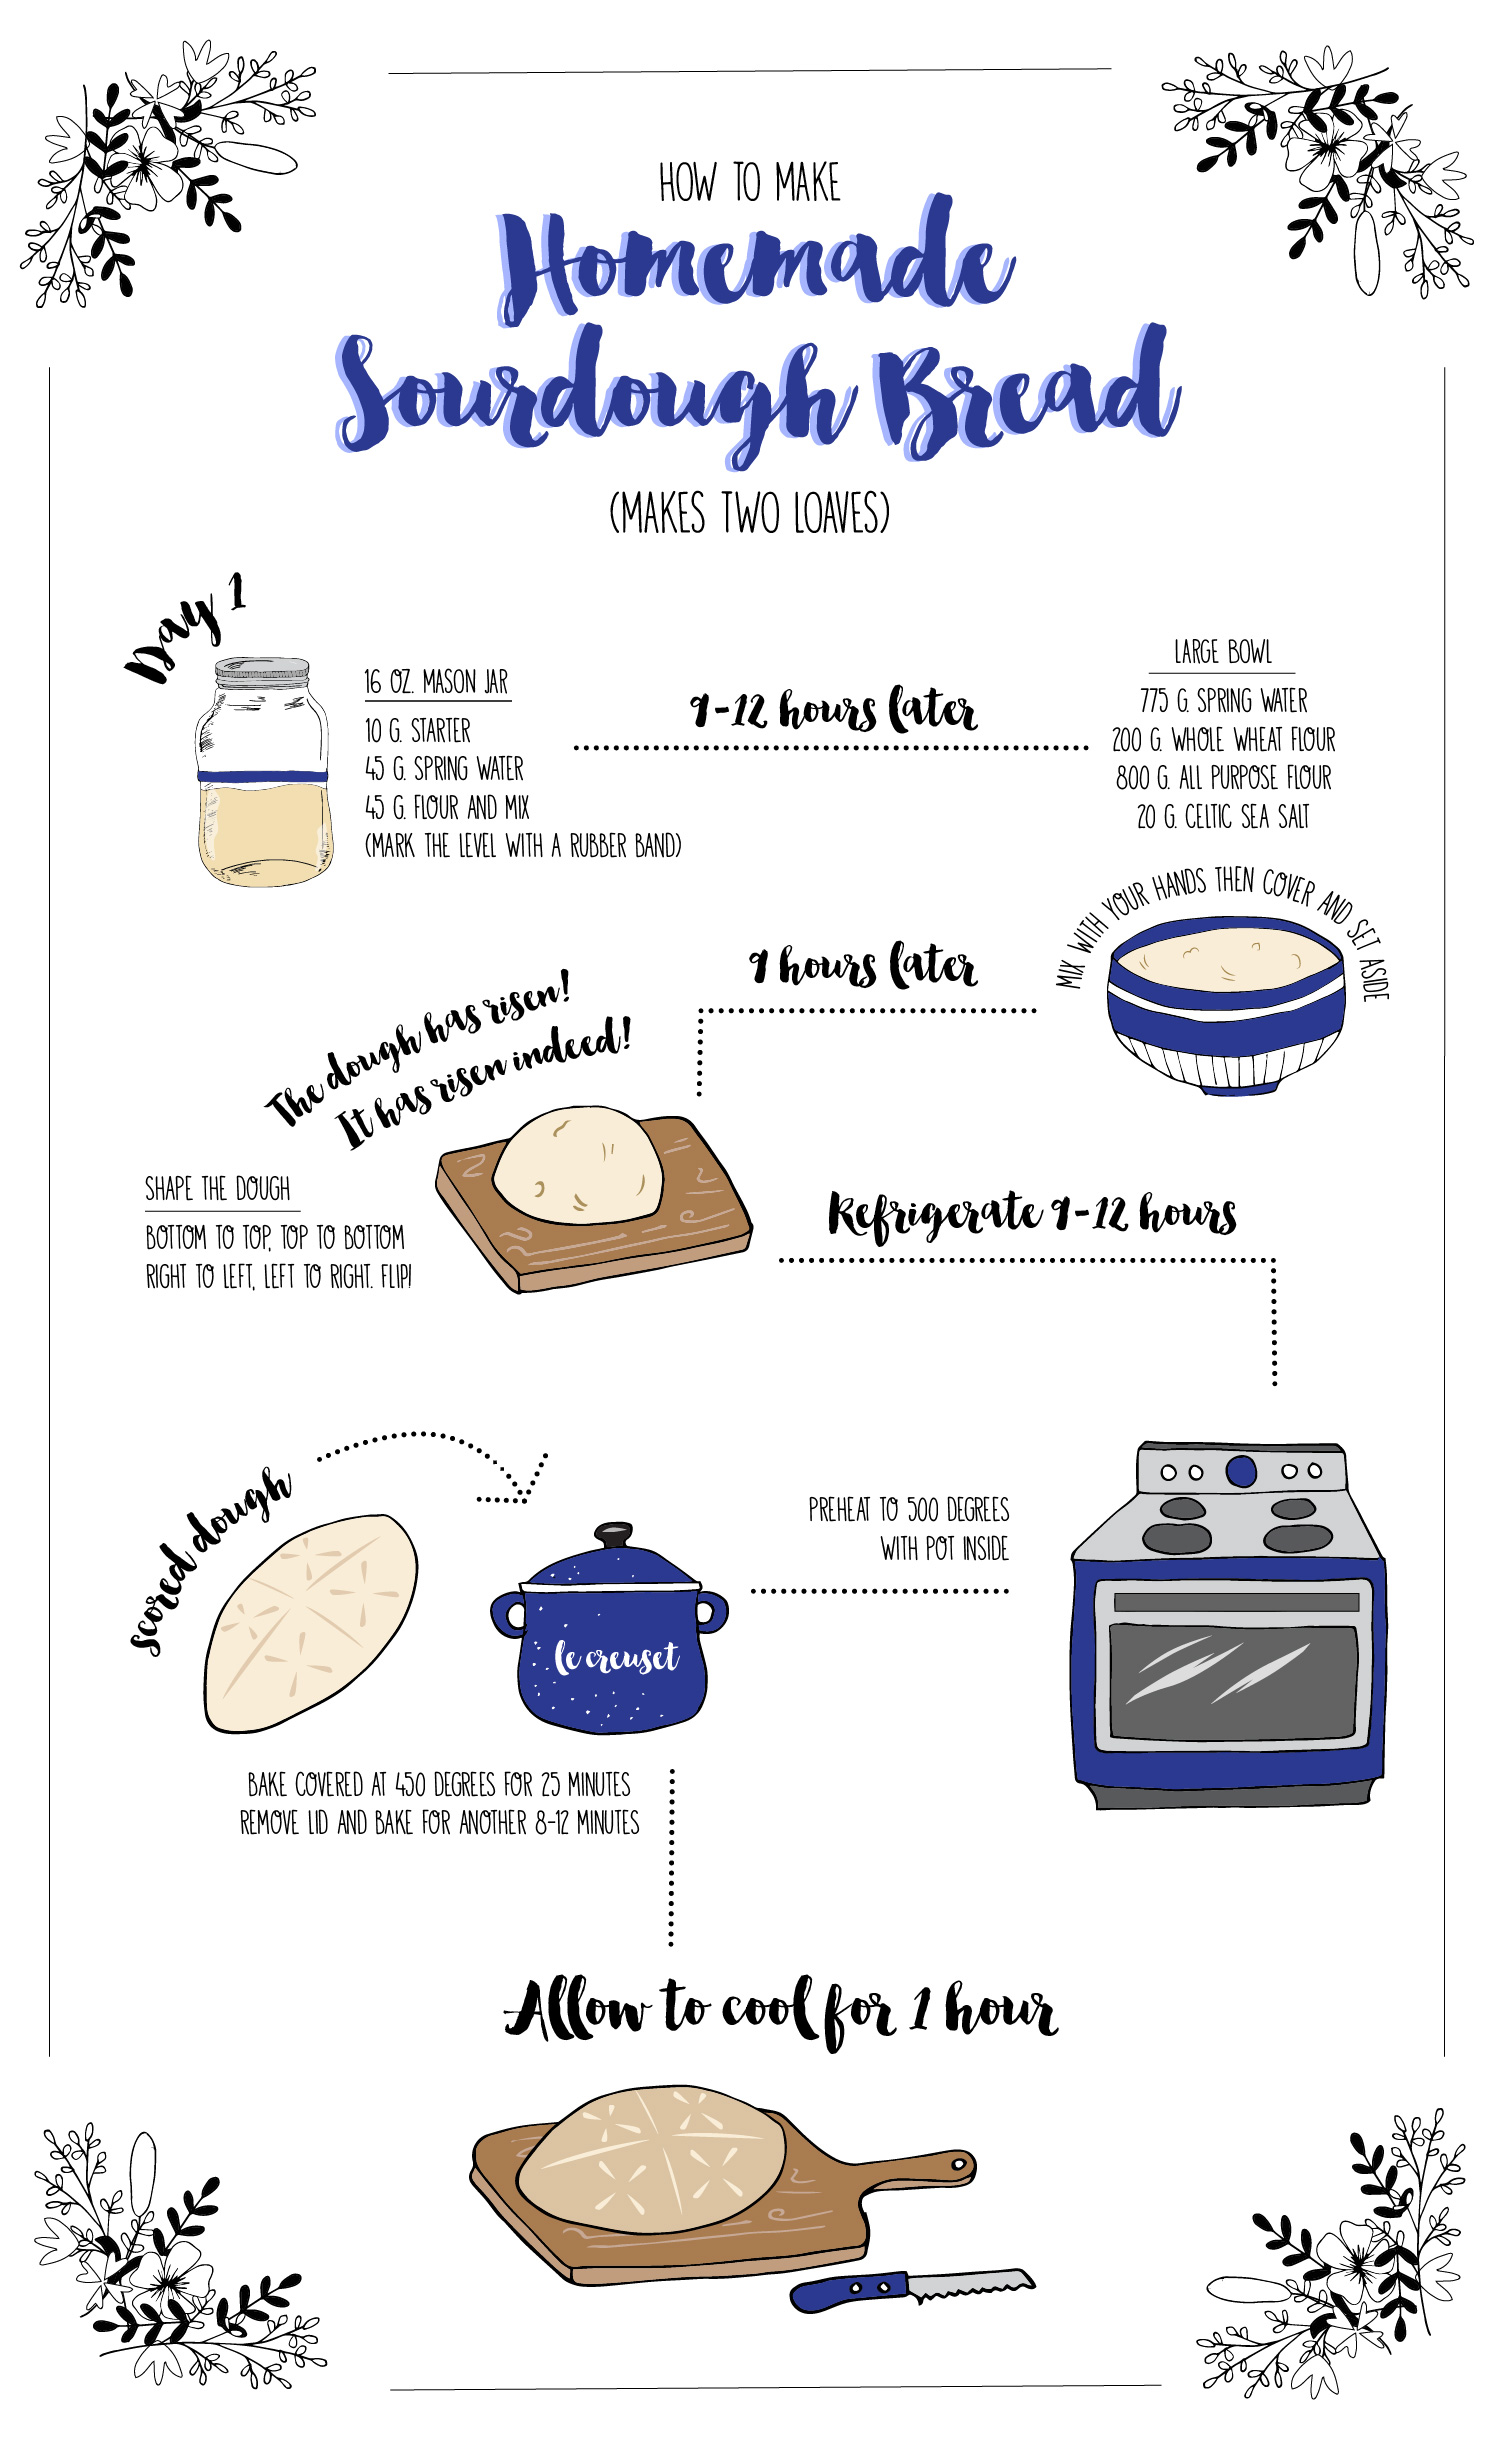 How To Make Real Sourdough Bread Gt The Effortless Chic